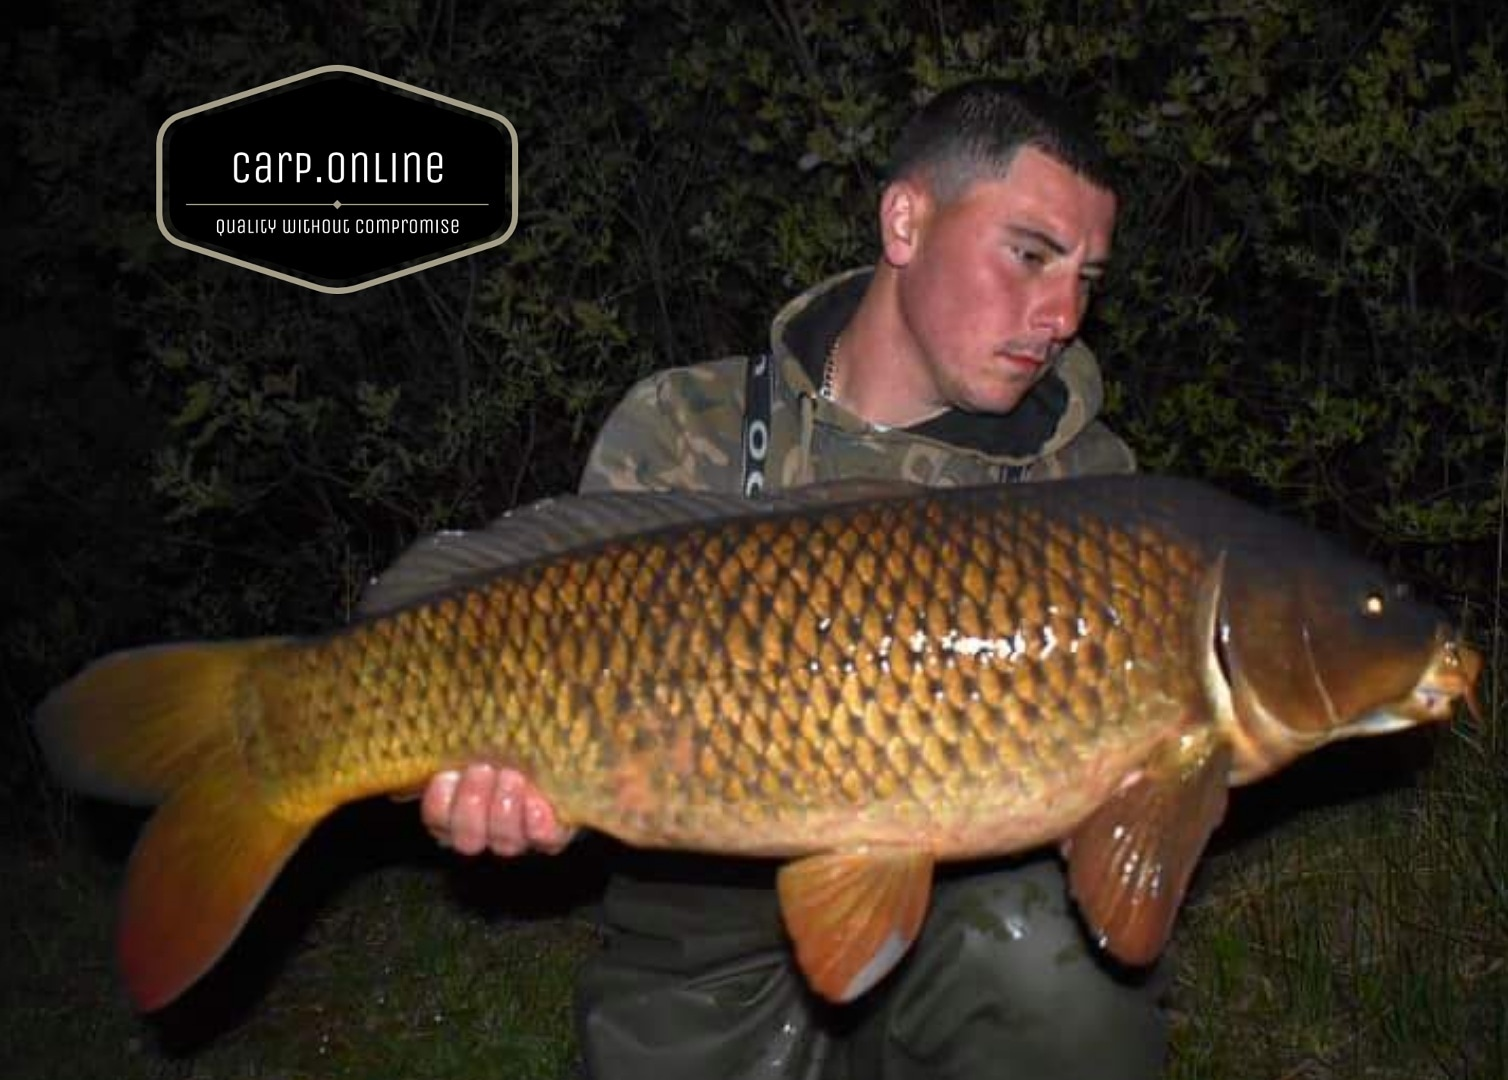 Reece Winkley carp tackle online